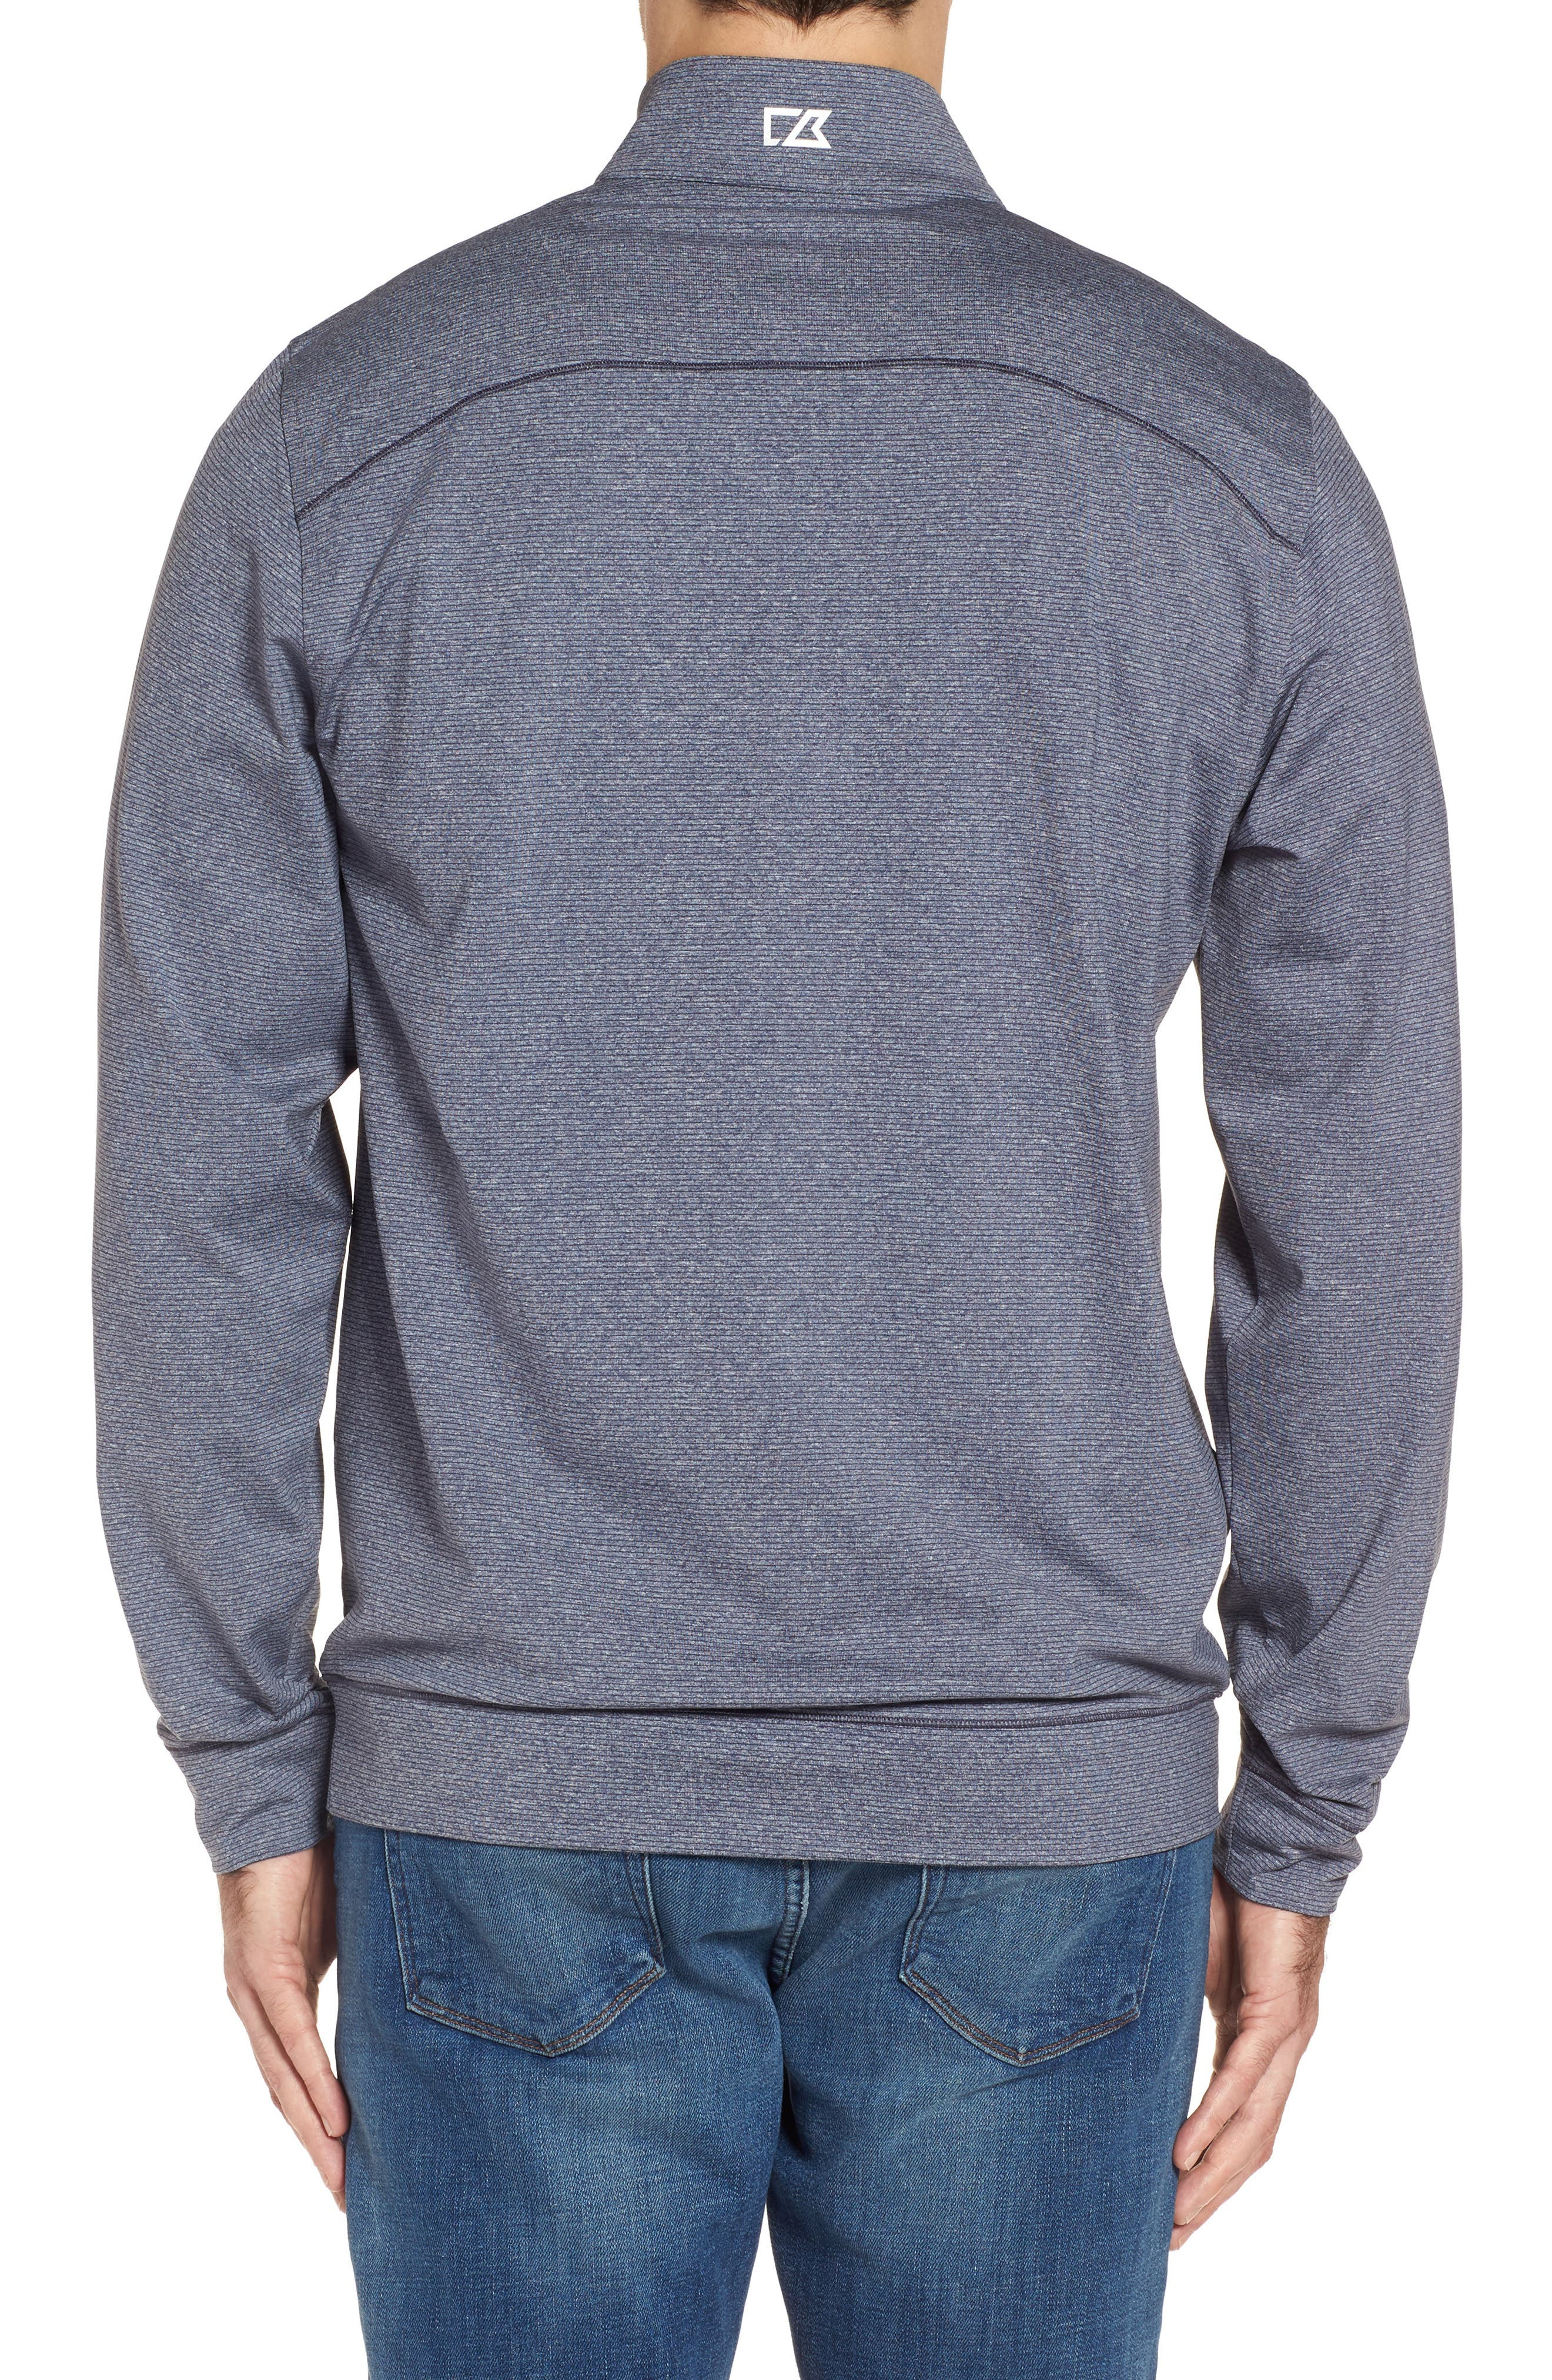 Shoreline - Los Angeles Chargers Half Zip Pullover,                             Alternate thumbnail 2, color,                             976